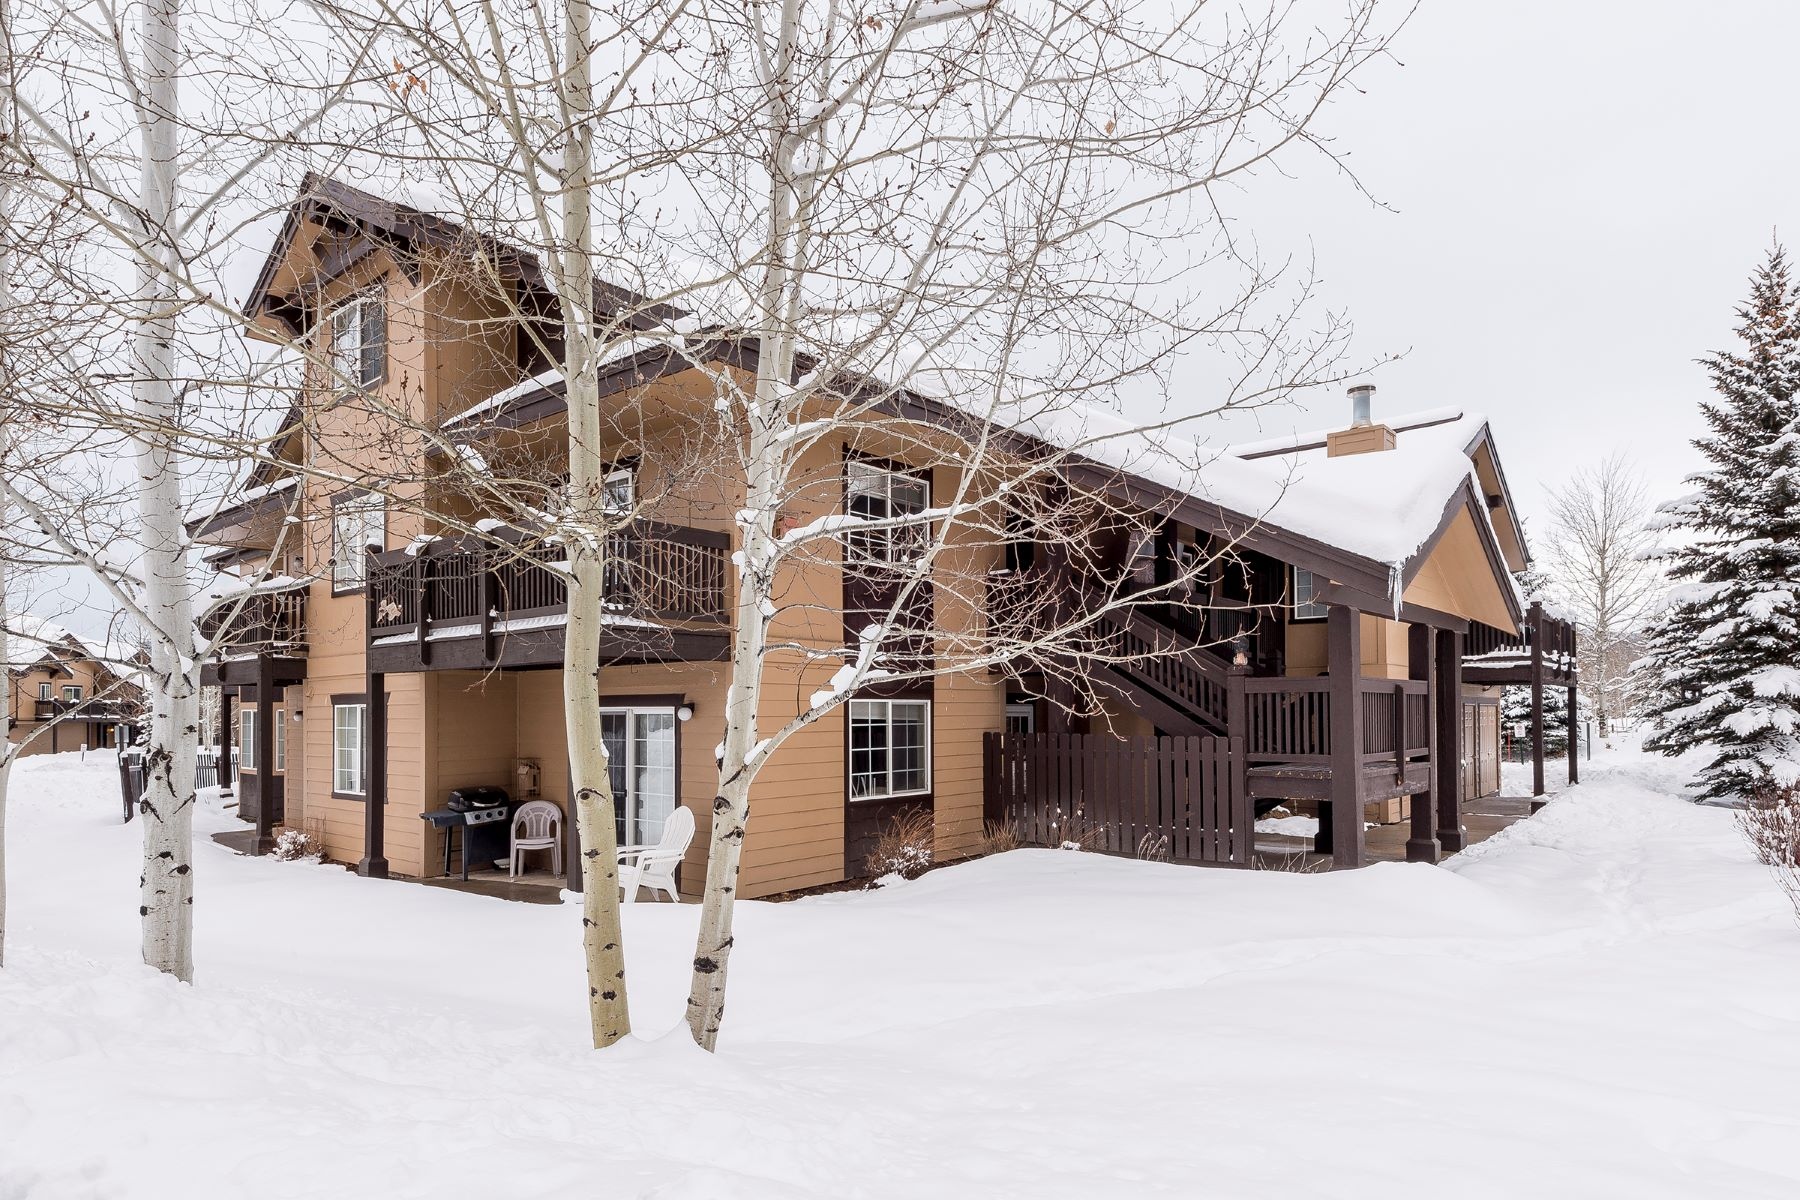 Кондоминиум для того Продажа на Quail Run, Steamboat Springs, CO 3303 Covey Cir #5, Steamboat Springs, Колорадо, 80487 Соединенные Штаты